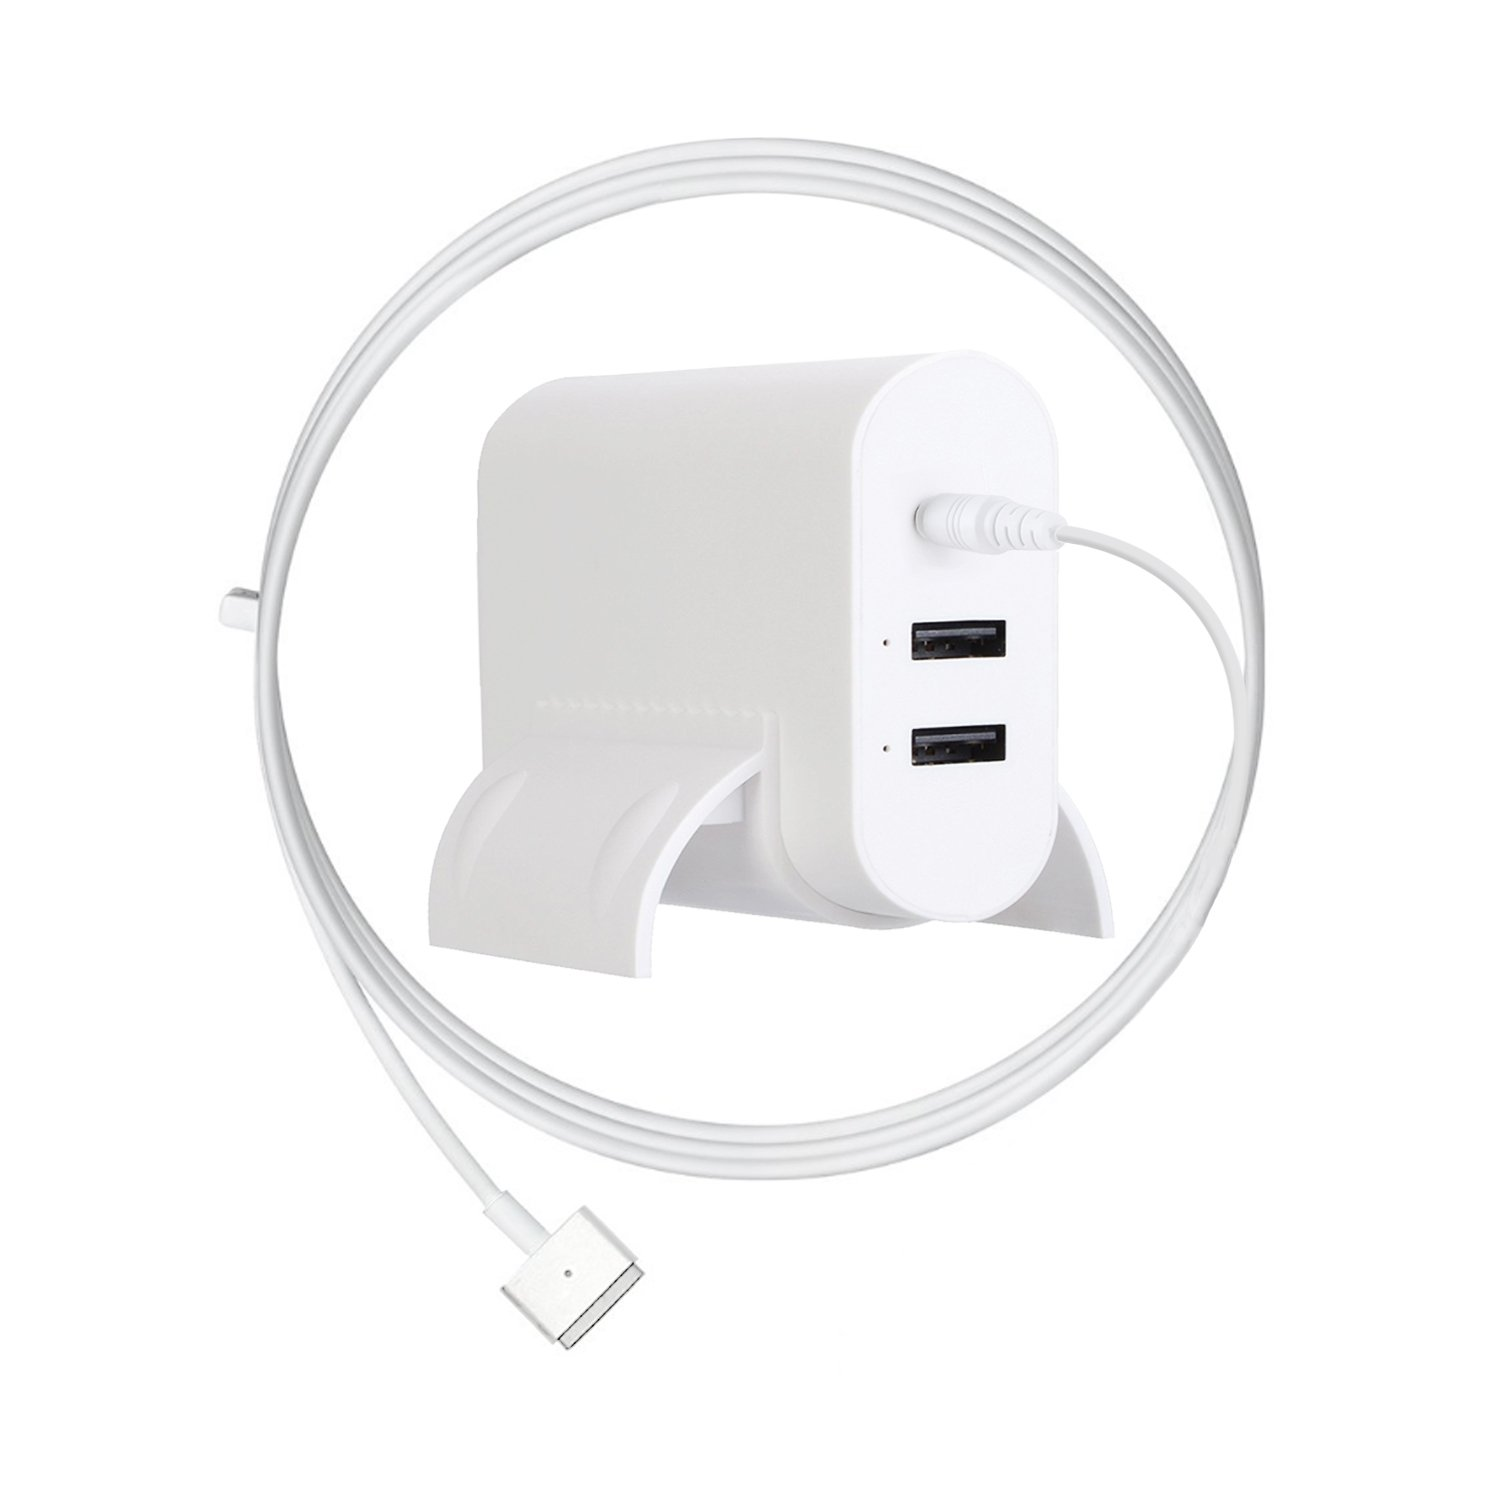 Ponkor 60W(Compatible with 45W Also) T-tip Magsafe 2 MacBook Pro Charger Replacement AC Power Adapter/Supply for Apple Mac Book Pro 13 inch(with 2-Port USB)